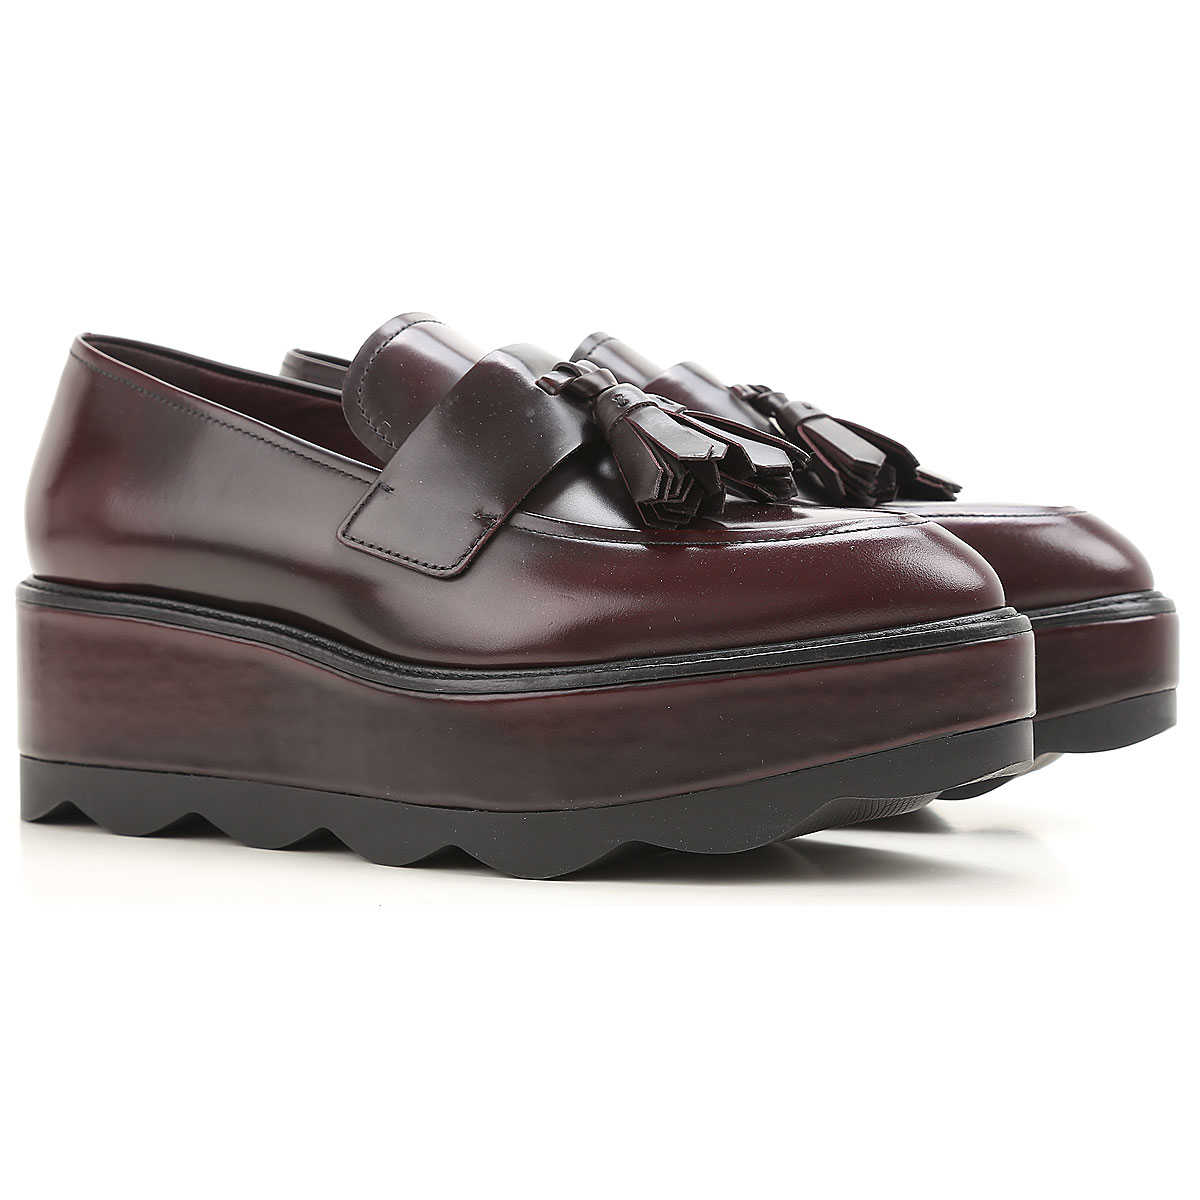 Prada Loafers for Women On Sale in Outlet Cordovan SE - GOOFASH